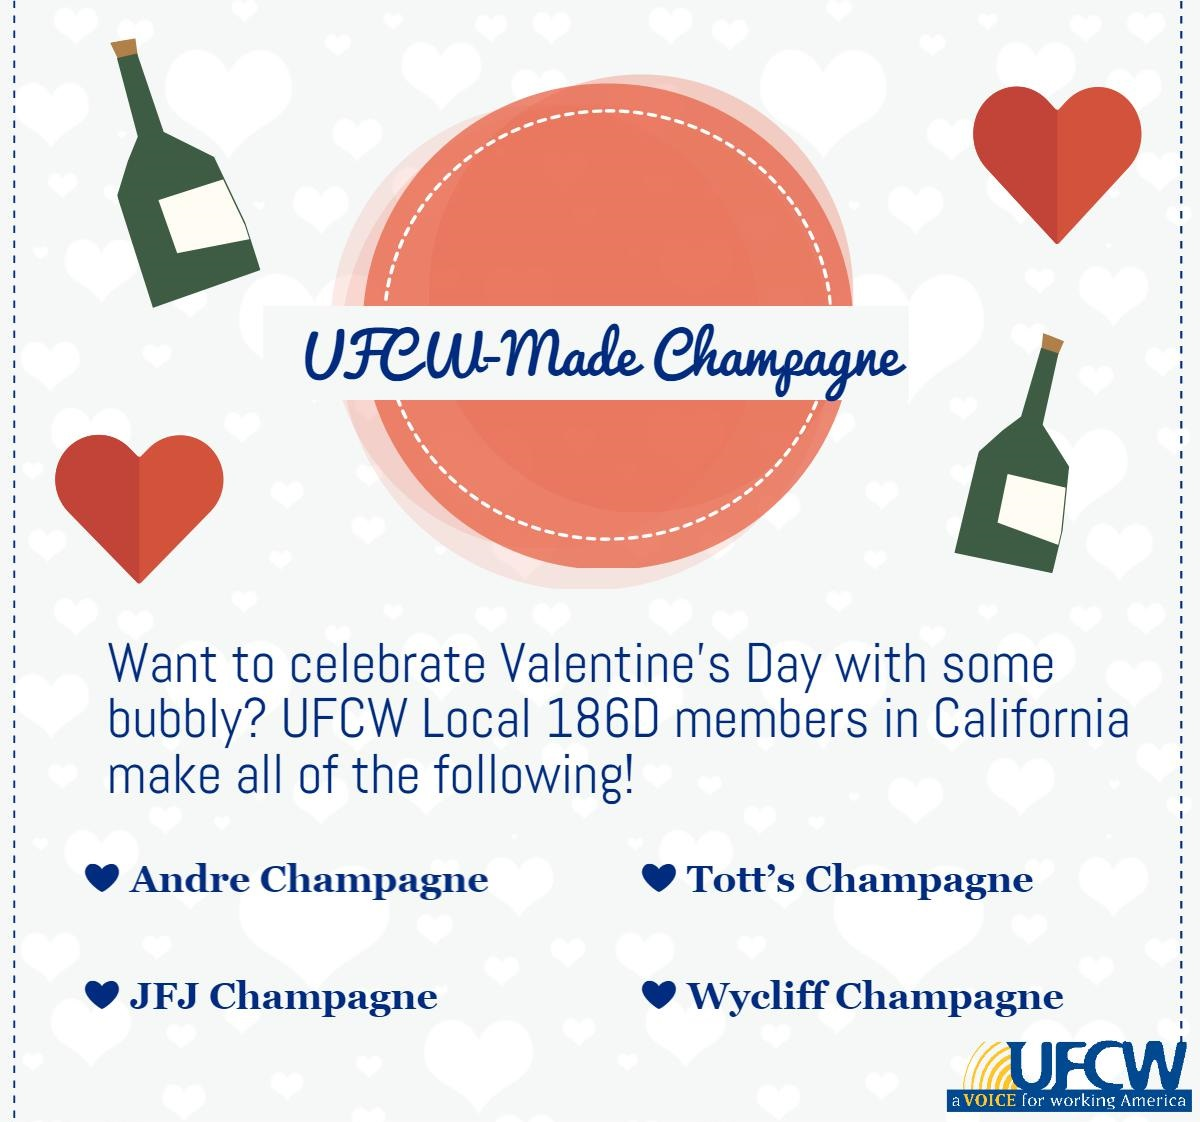 Andre Champagne JFJ Champagne Tott's Champagne Wycliff Champagne